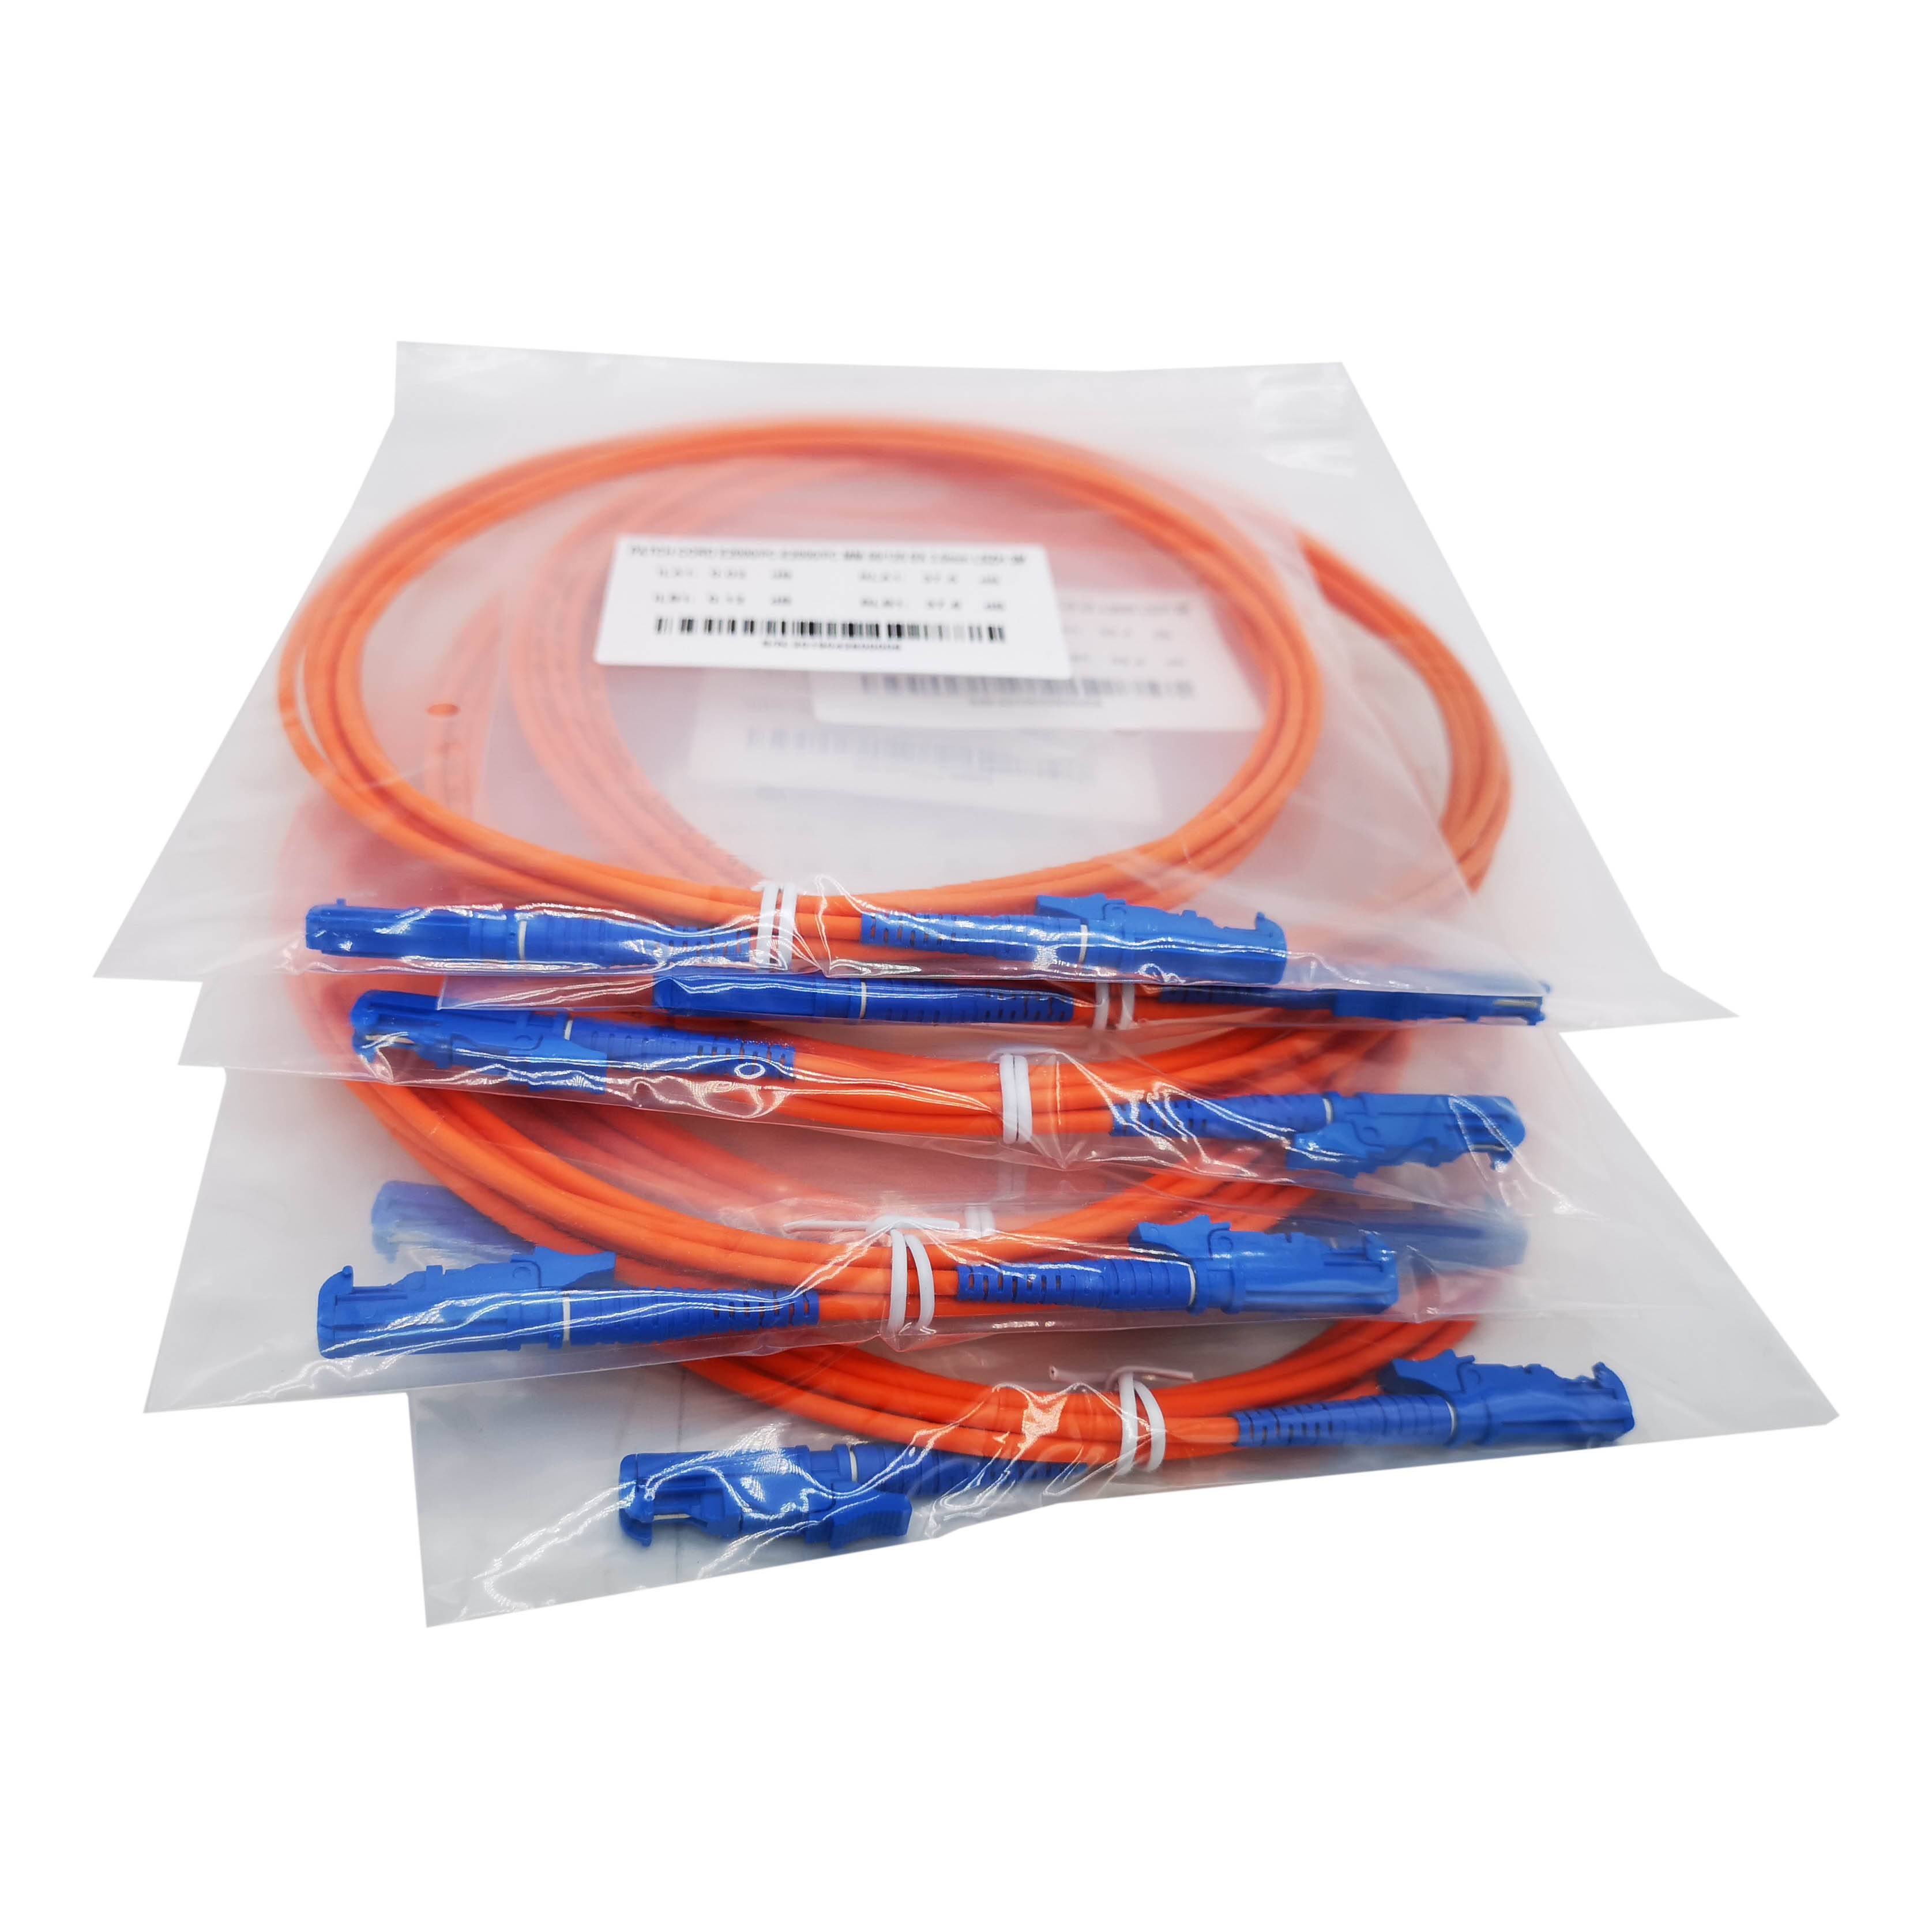 E2000 / APC UPC Fiber Optic Patch Cable 3 Meters / Fiber Optic Jumpers R&M,HUBER + SUHNER